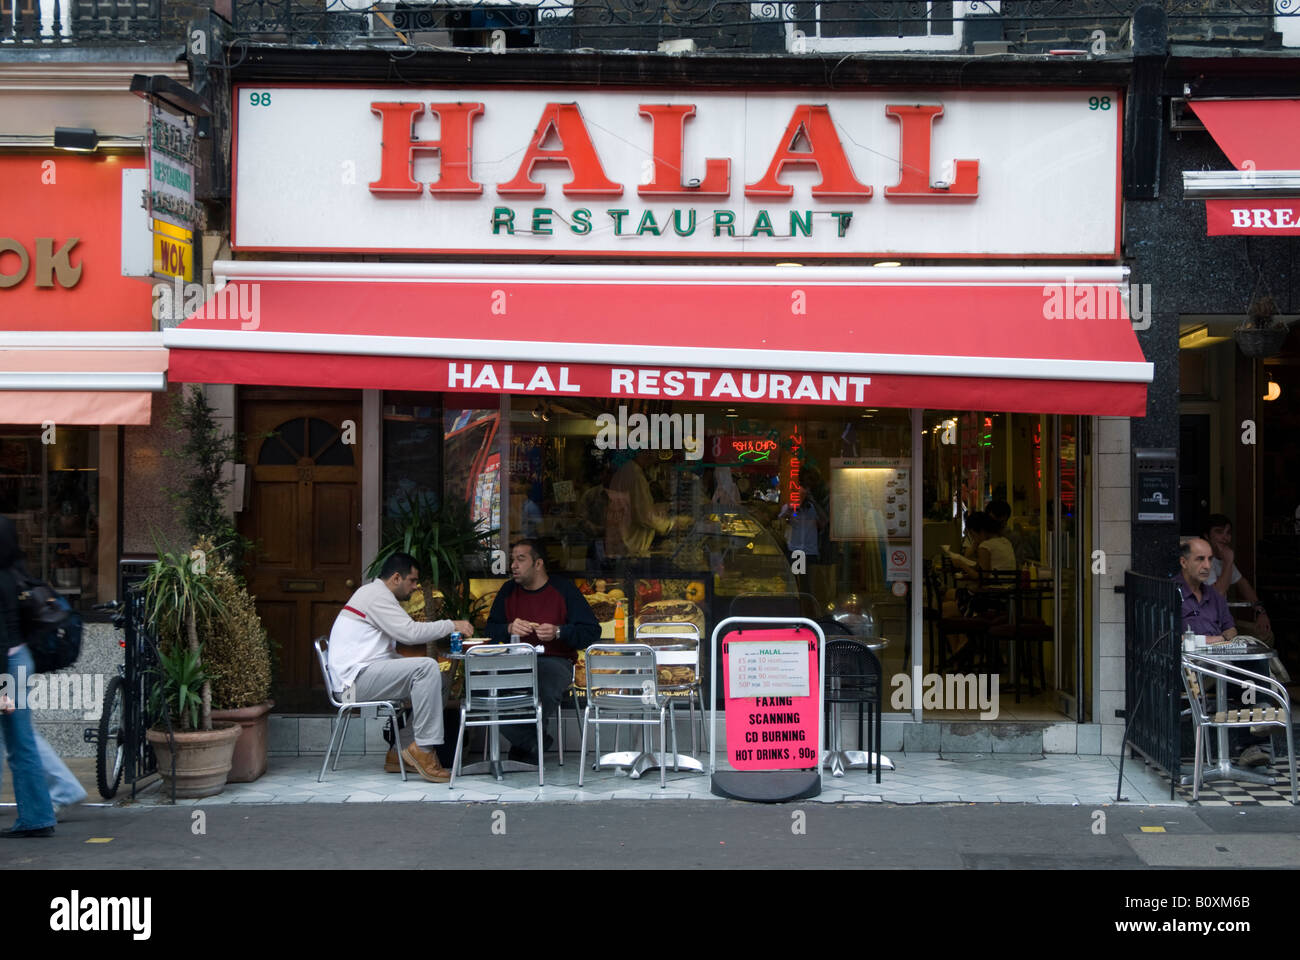 halal restaurant in queensway in bayswater london england uk stock photo royalty free image. Black Bedroom Furniture Sets. Home Design Ideas